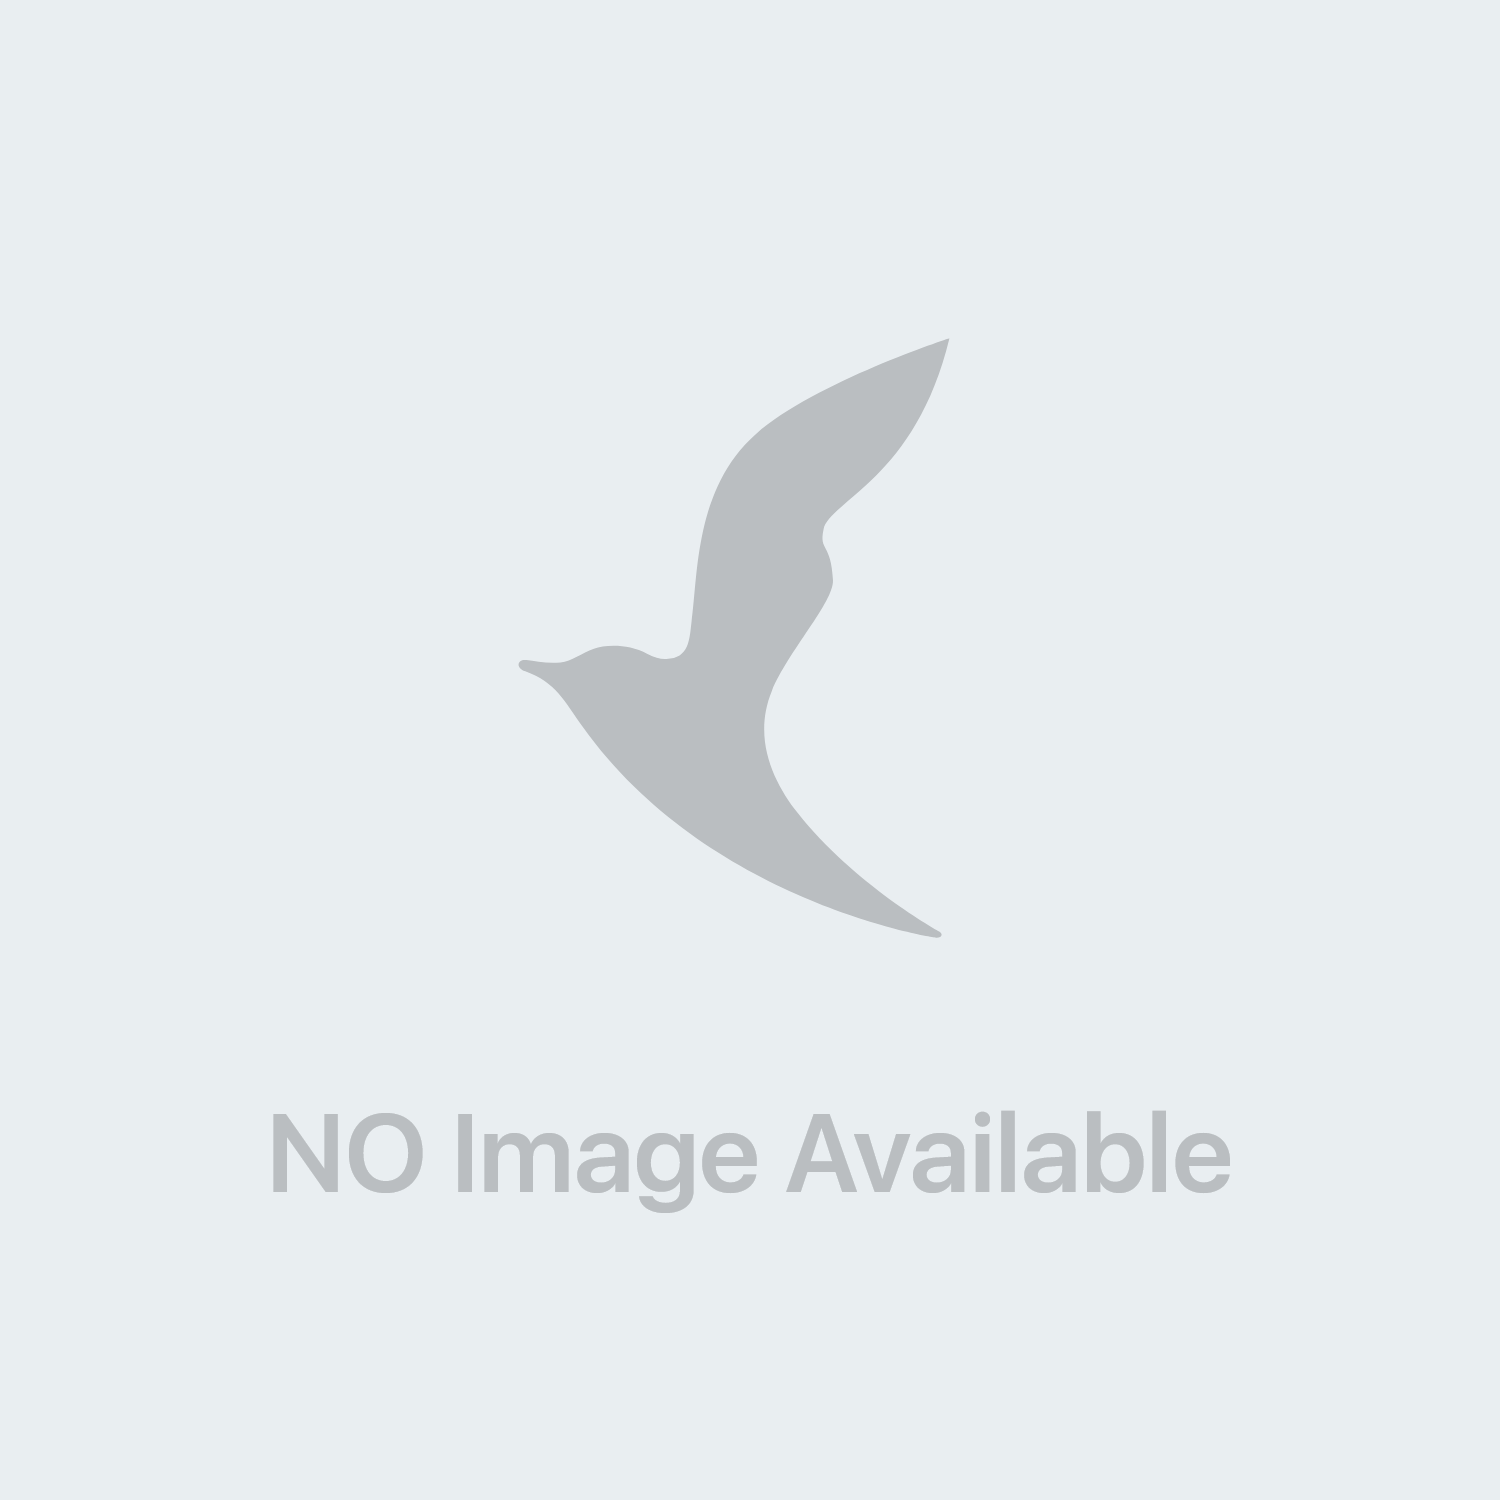 Imidazyl Antistaminico 1 mg/ml Nafazolina nitrato Collirio 10 ml